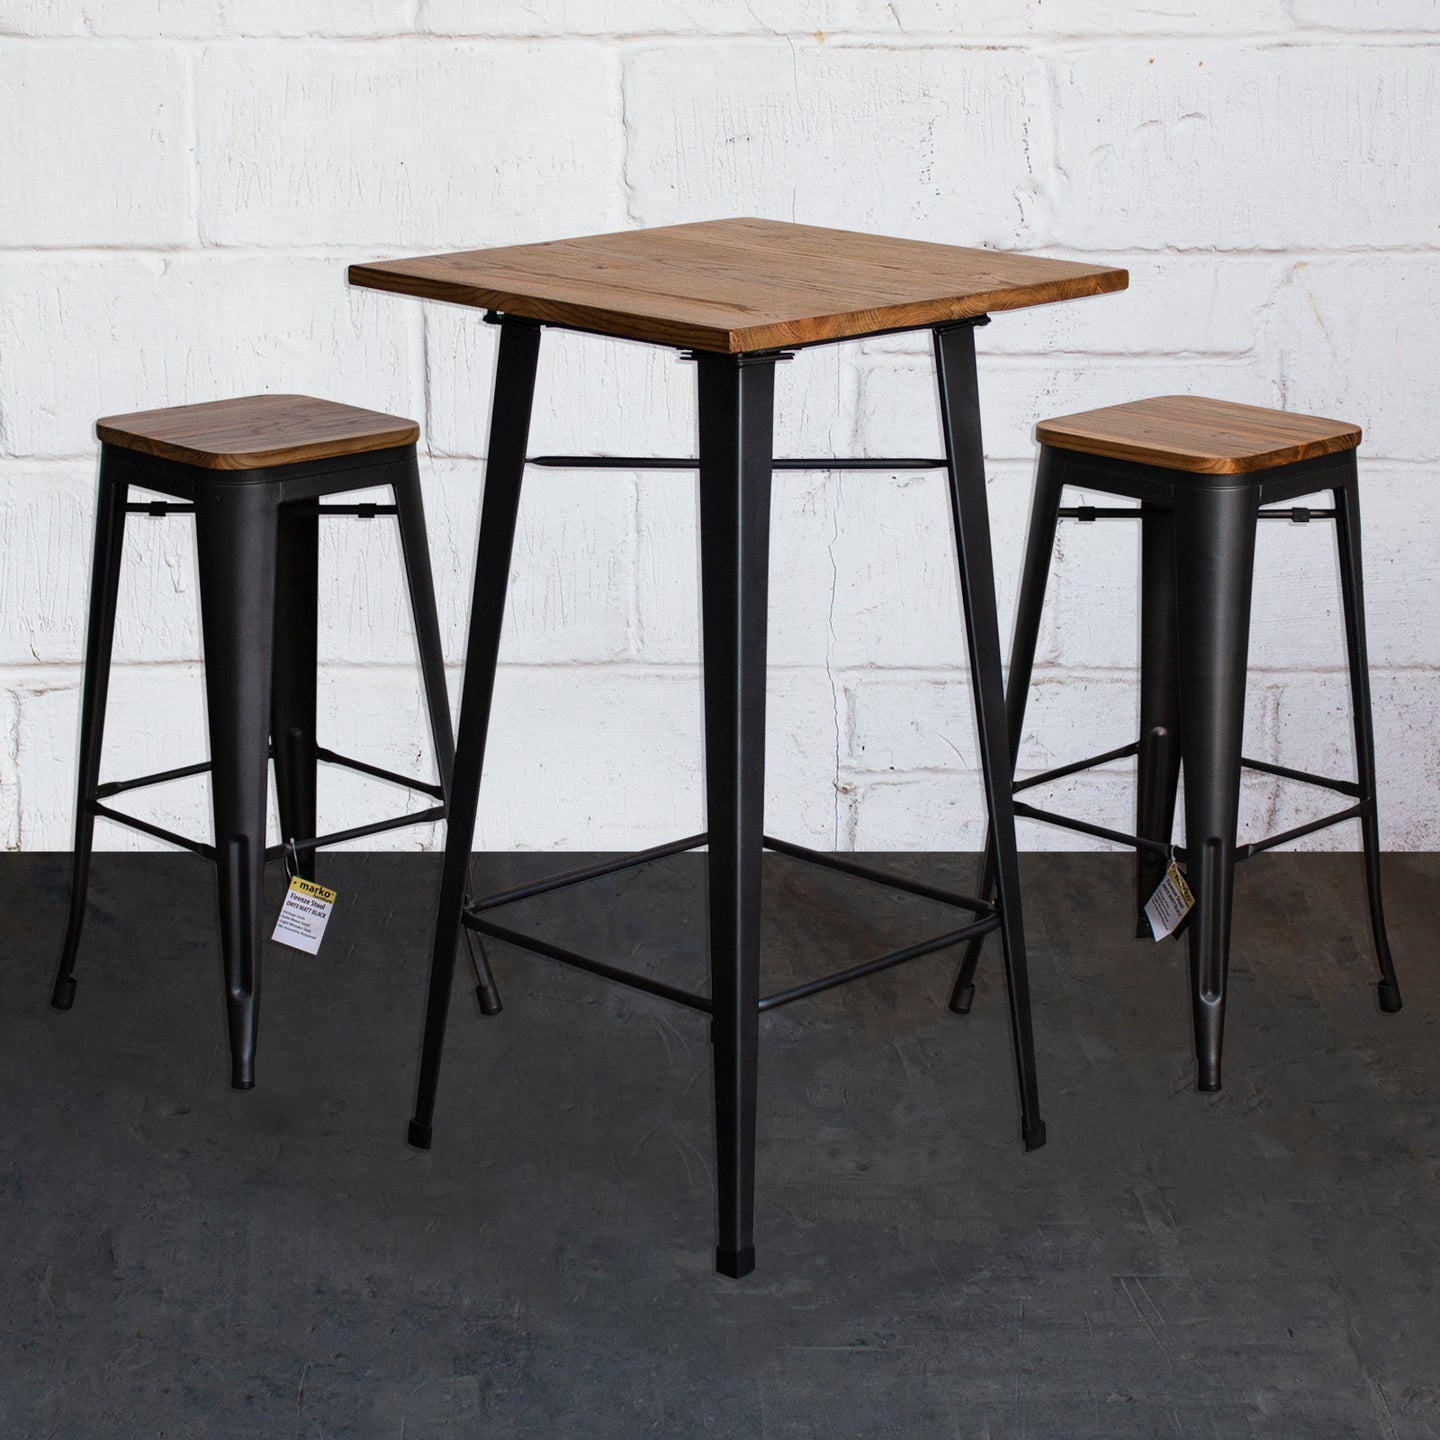 3PC Lodi Table & Firenze Bar Stool Set - Onyx Matt Black